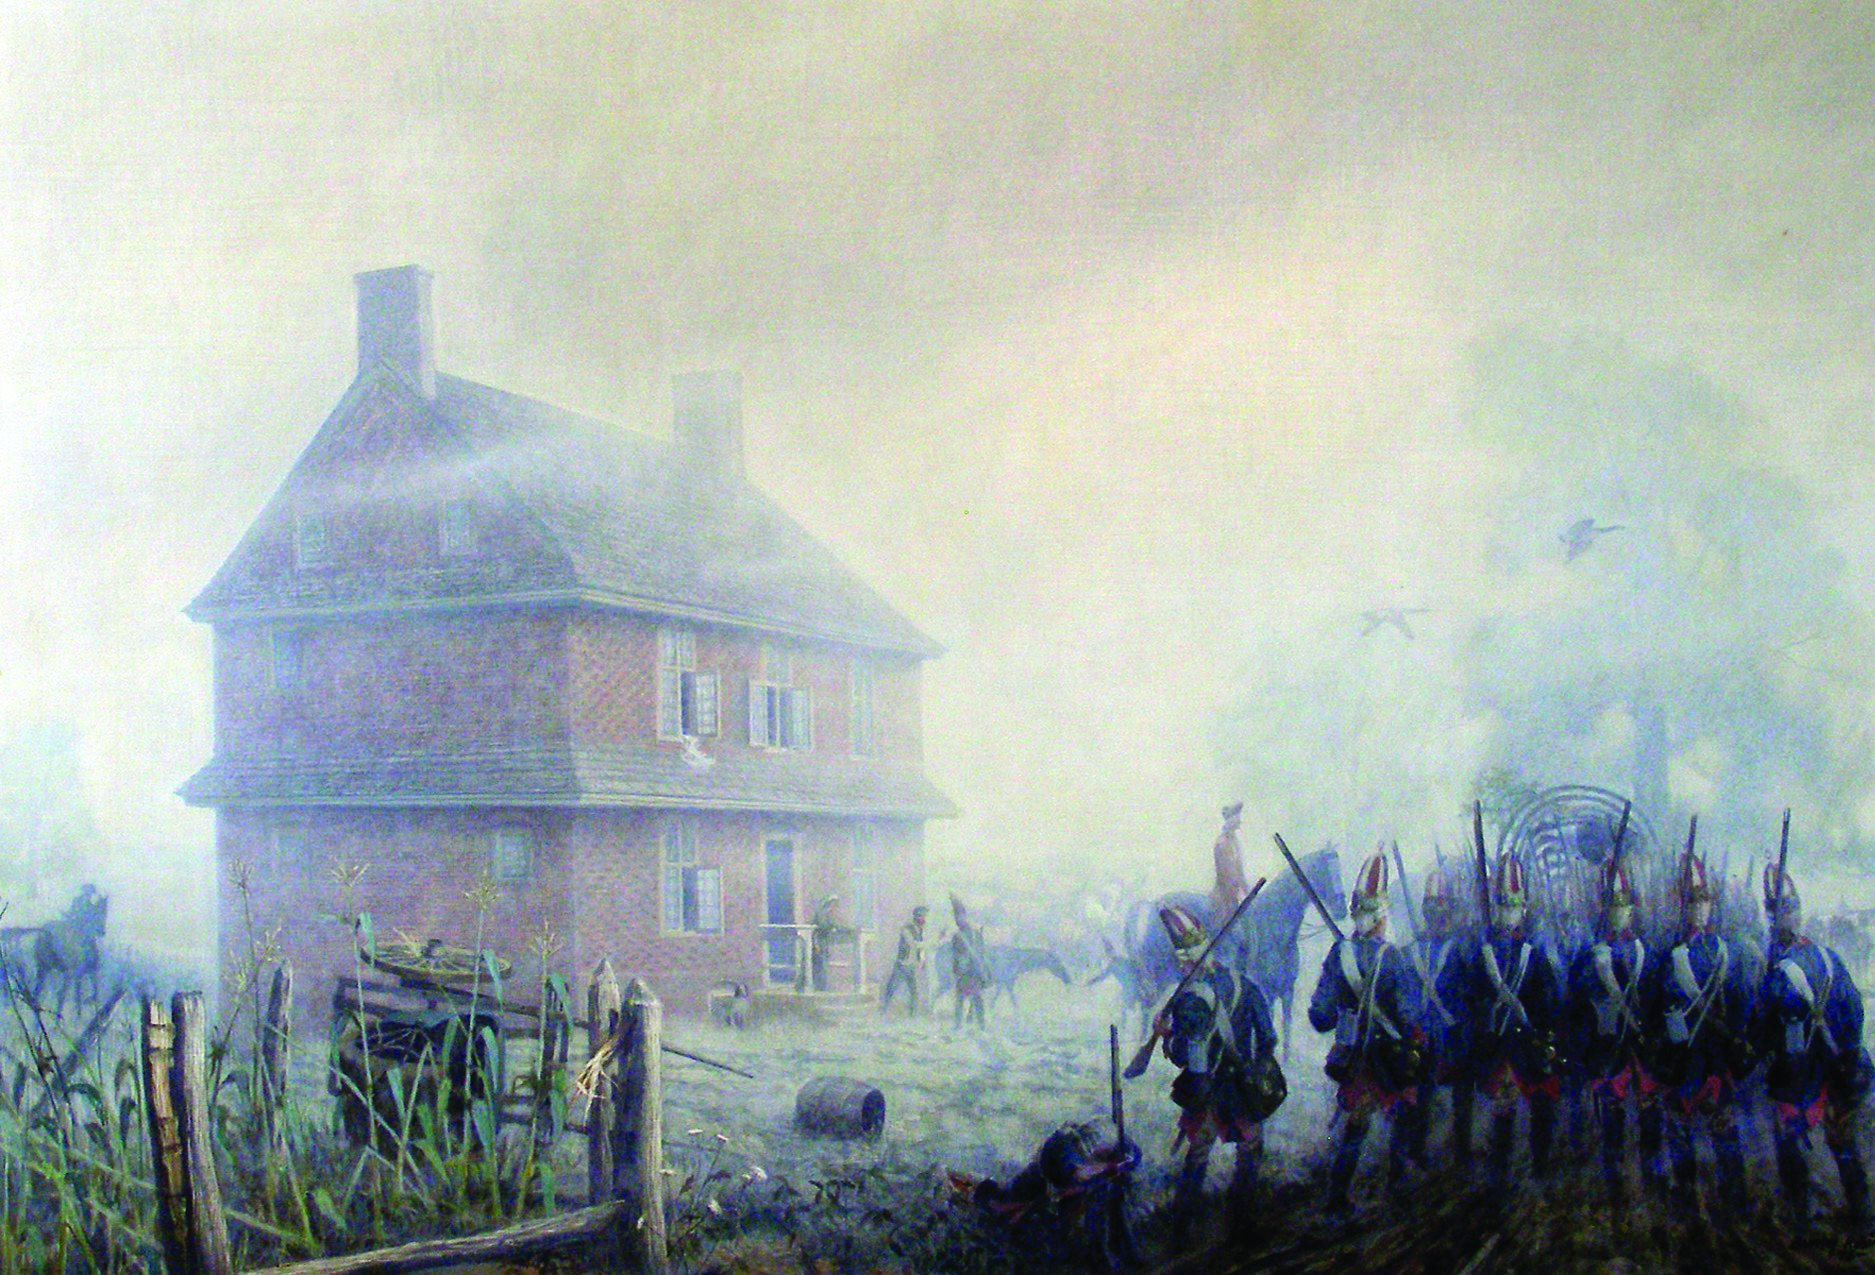 A Painting depicting the Hessian troops passing the house on their way to the Battle of Brandywine